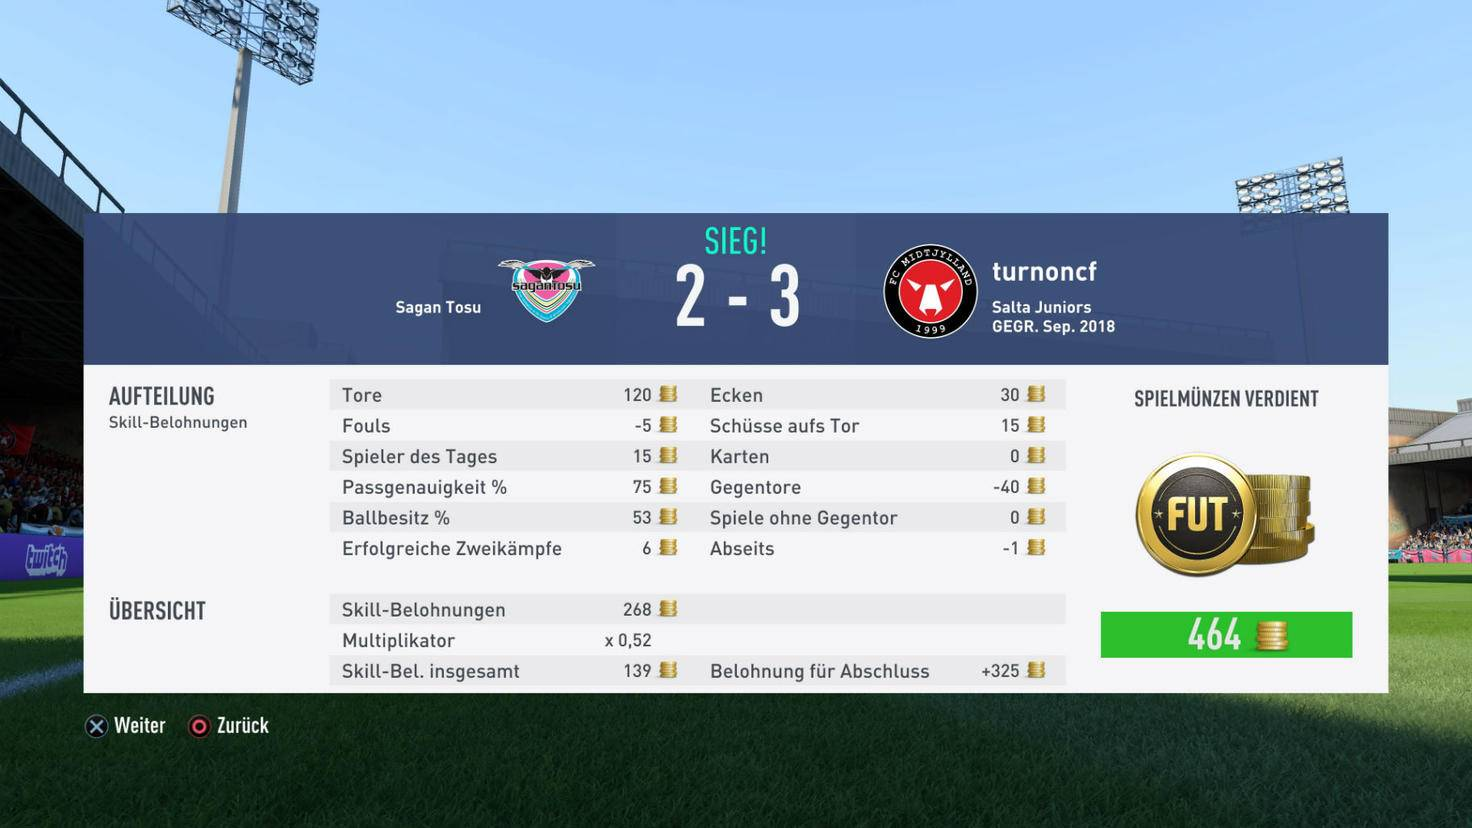 fifa-19-fut-gold-menue-screenshot